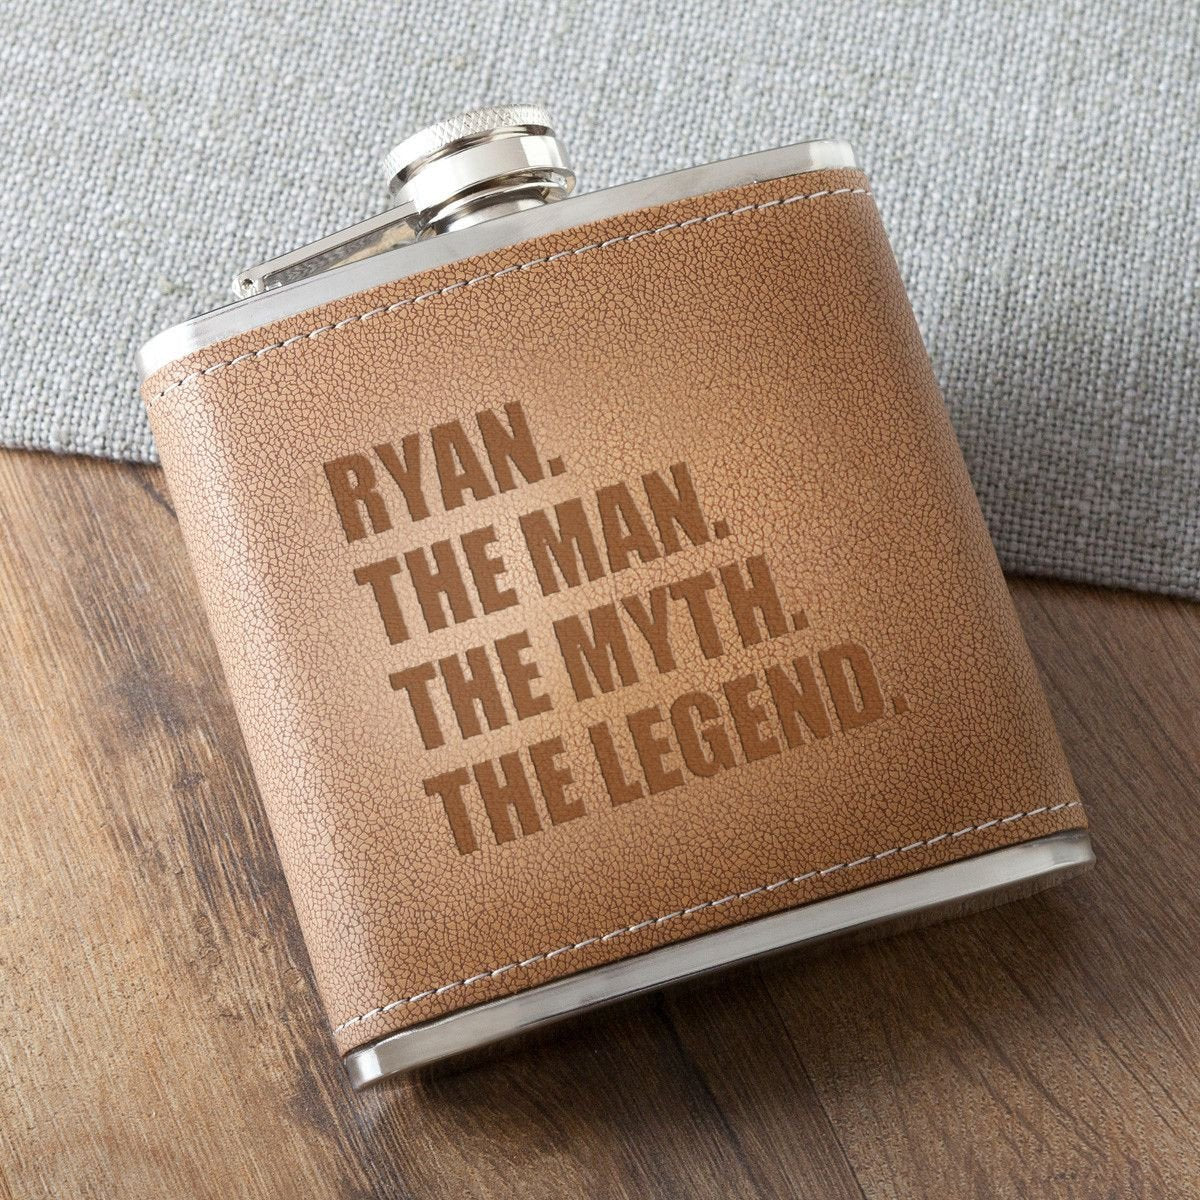 The-Man-The-Myth-The-Legend-Tan-Hide-Stitched-Flask